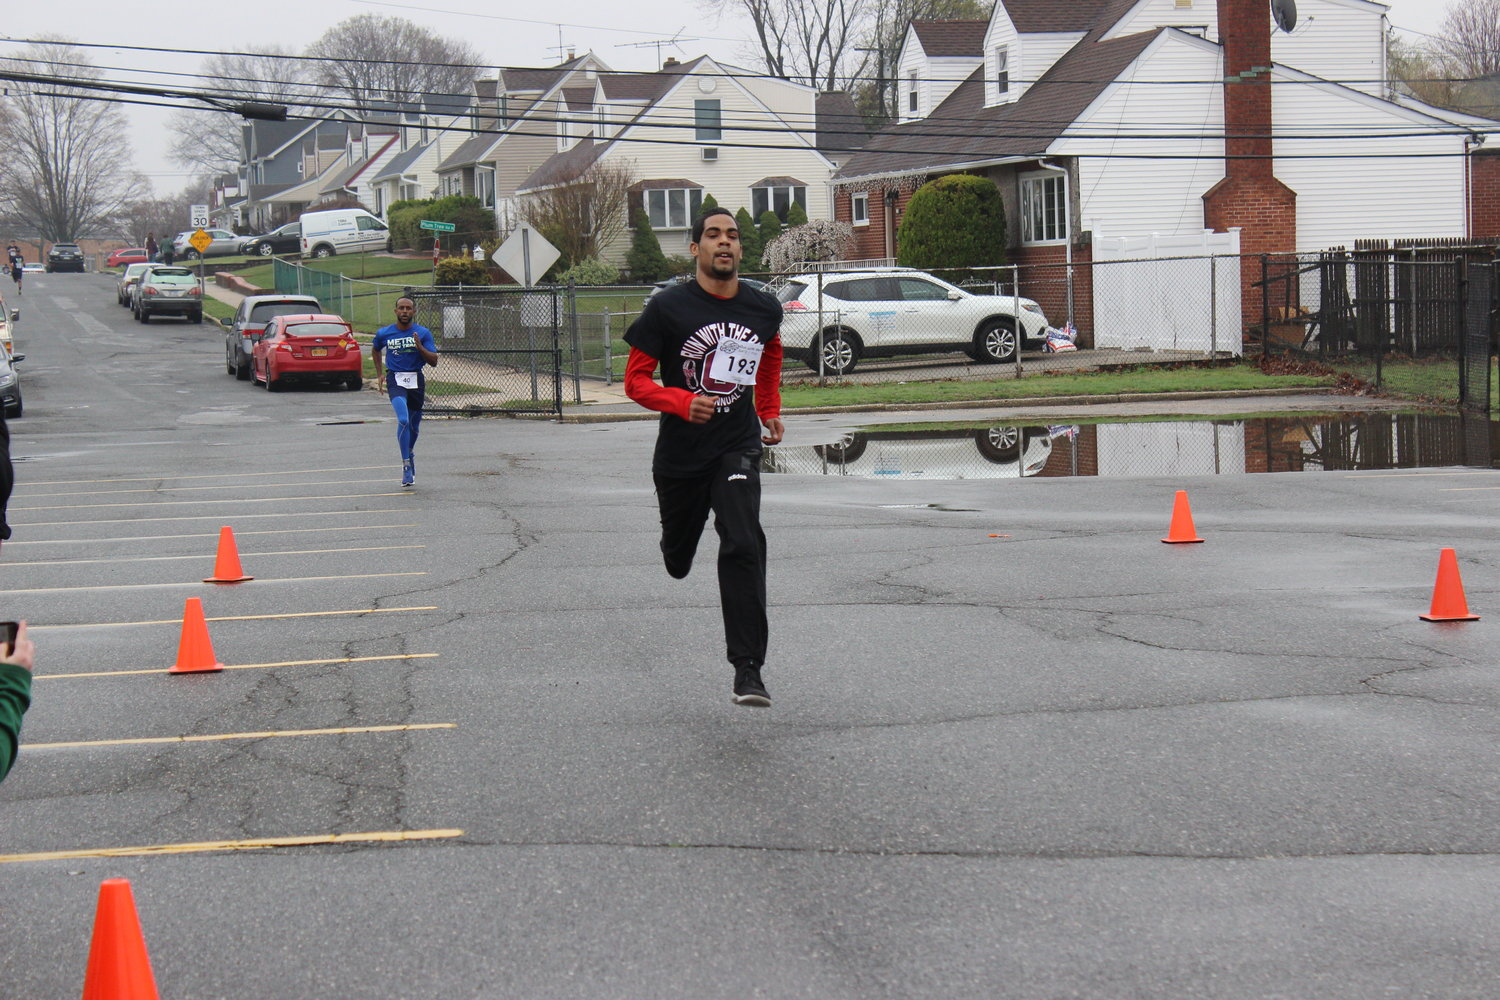 Mark Reyes shot ahead of Feurtado at the finish line. Reyes, an independent runner from Hempstead, said he spotted the race online and jumped at the opportunity to compete.